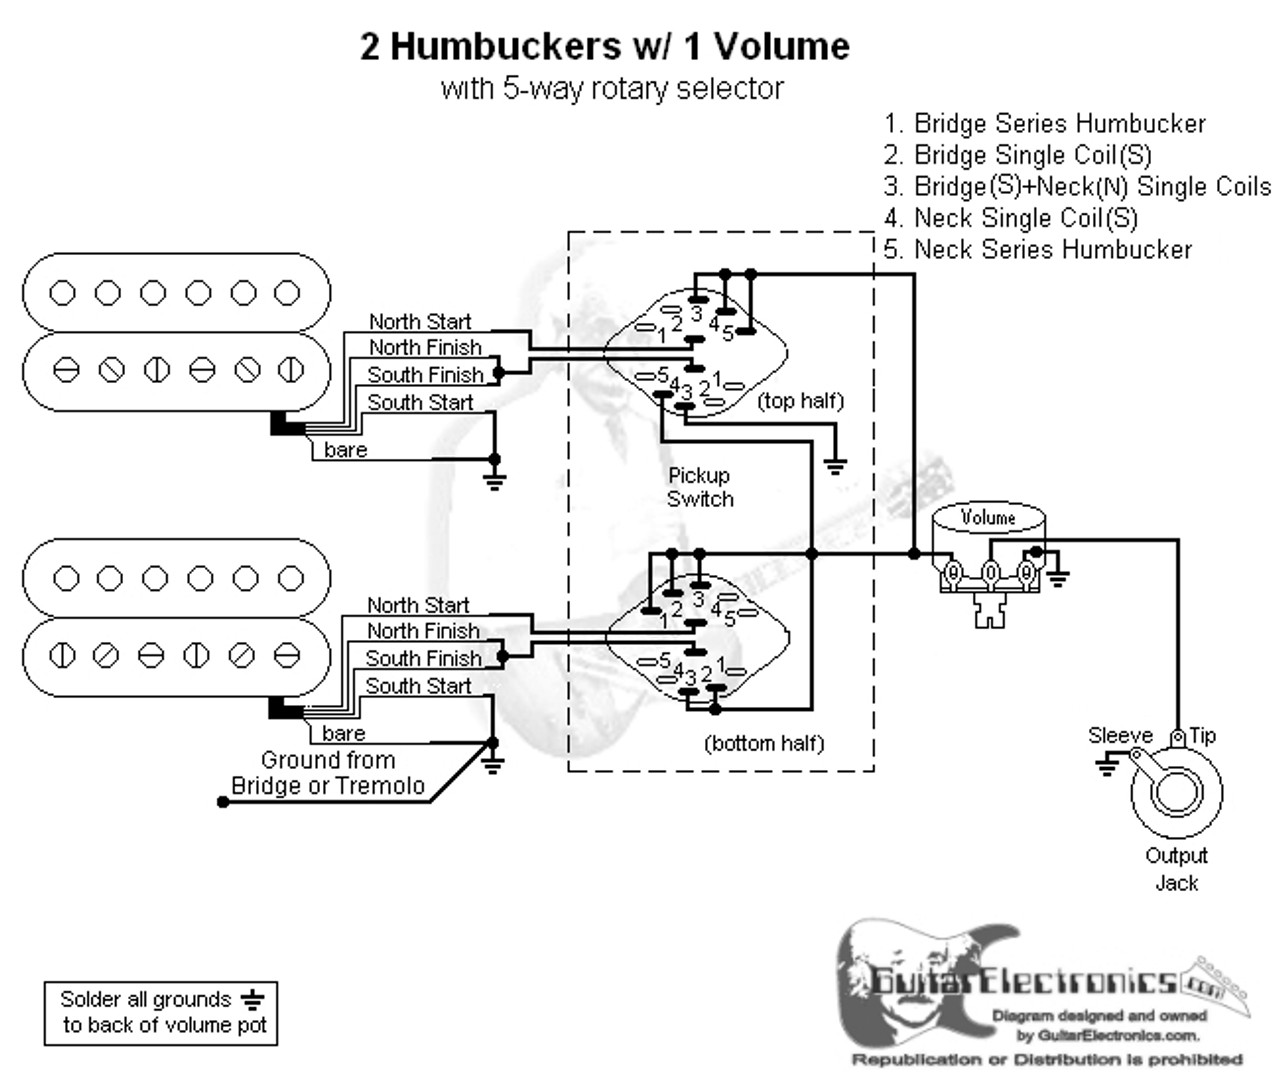 hight resolution of rotary coil wiring diagram wiring diagrams wni 2 humbuckers 5 way rotary switch 1 volume 00